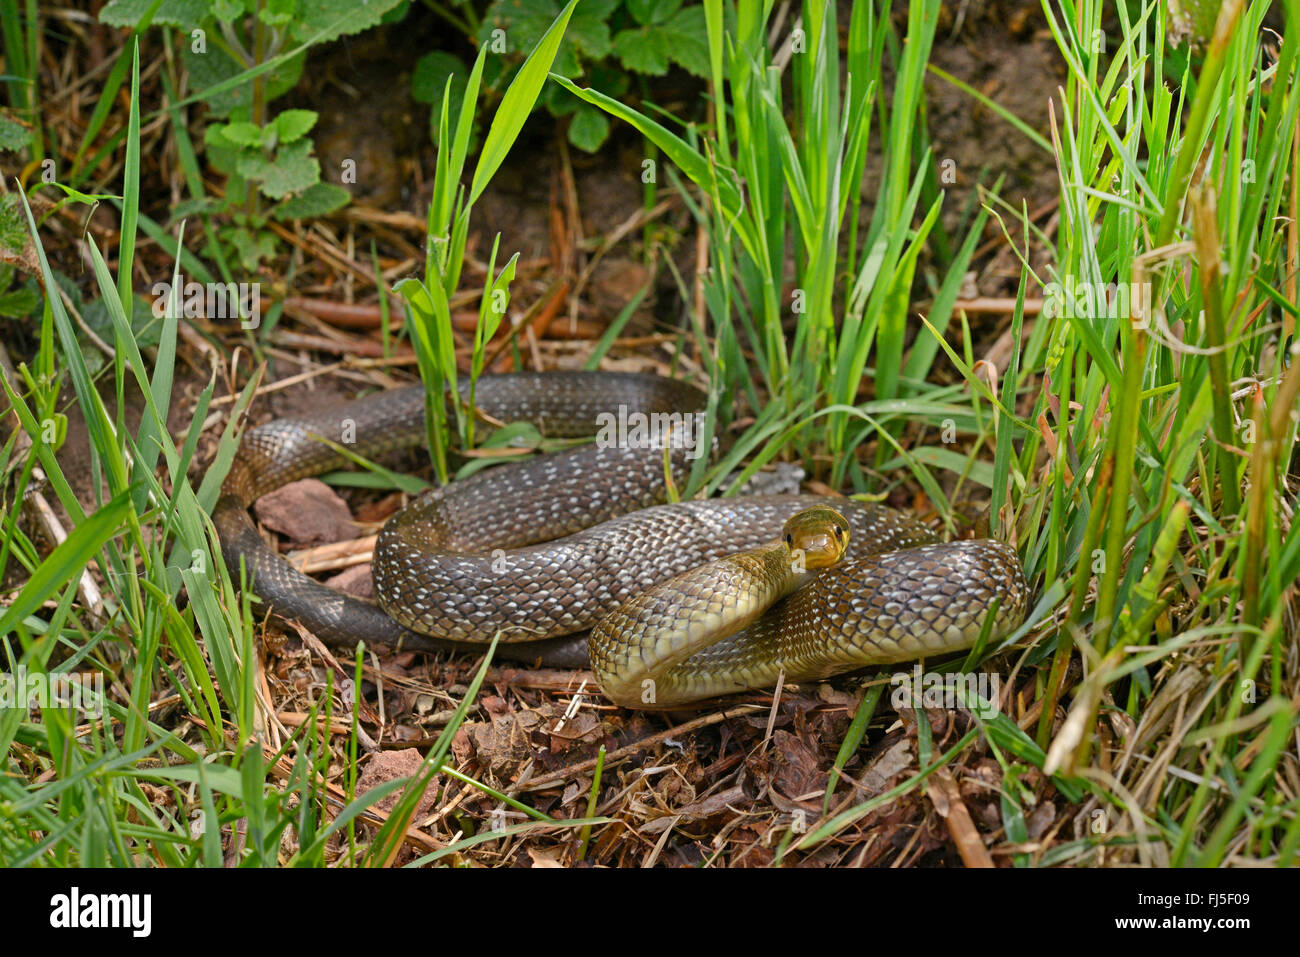 European ratsnake snake ratsnake stockfotos european for Boden deutschland